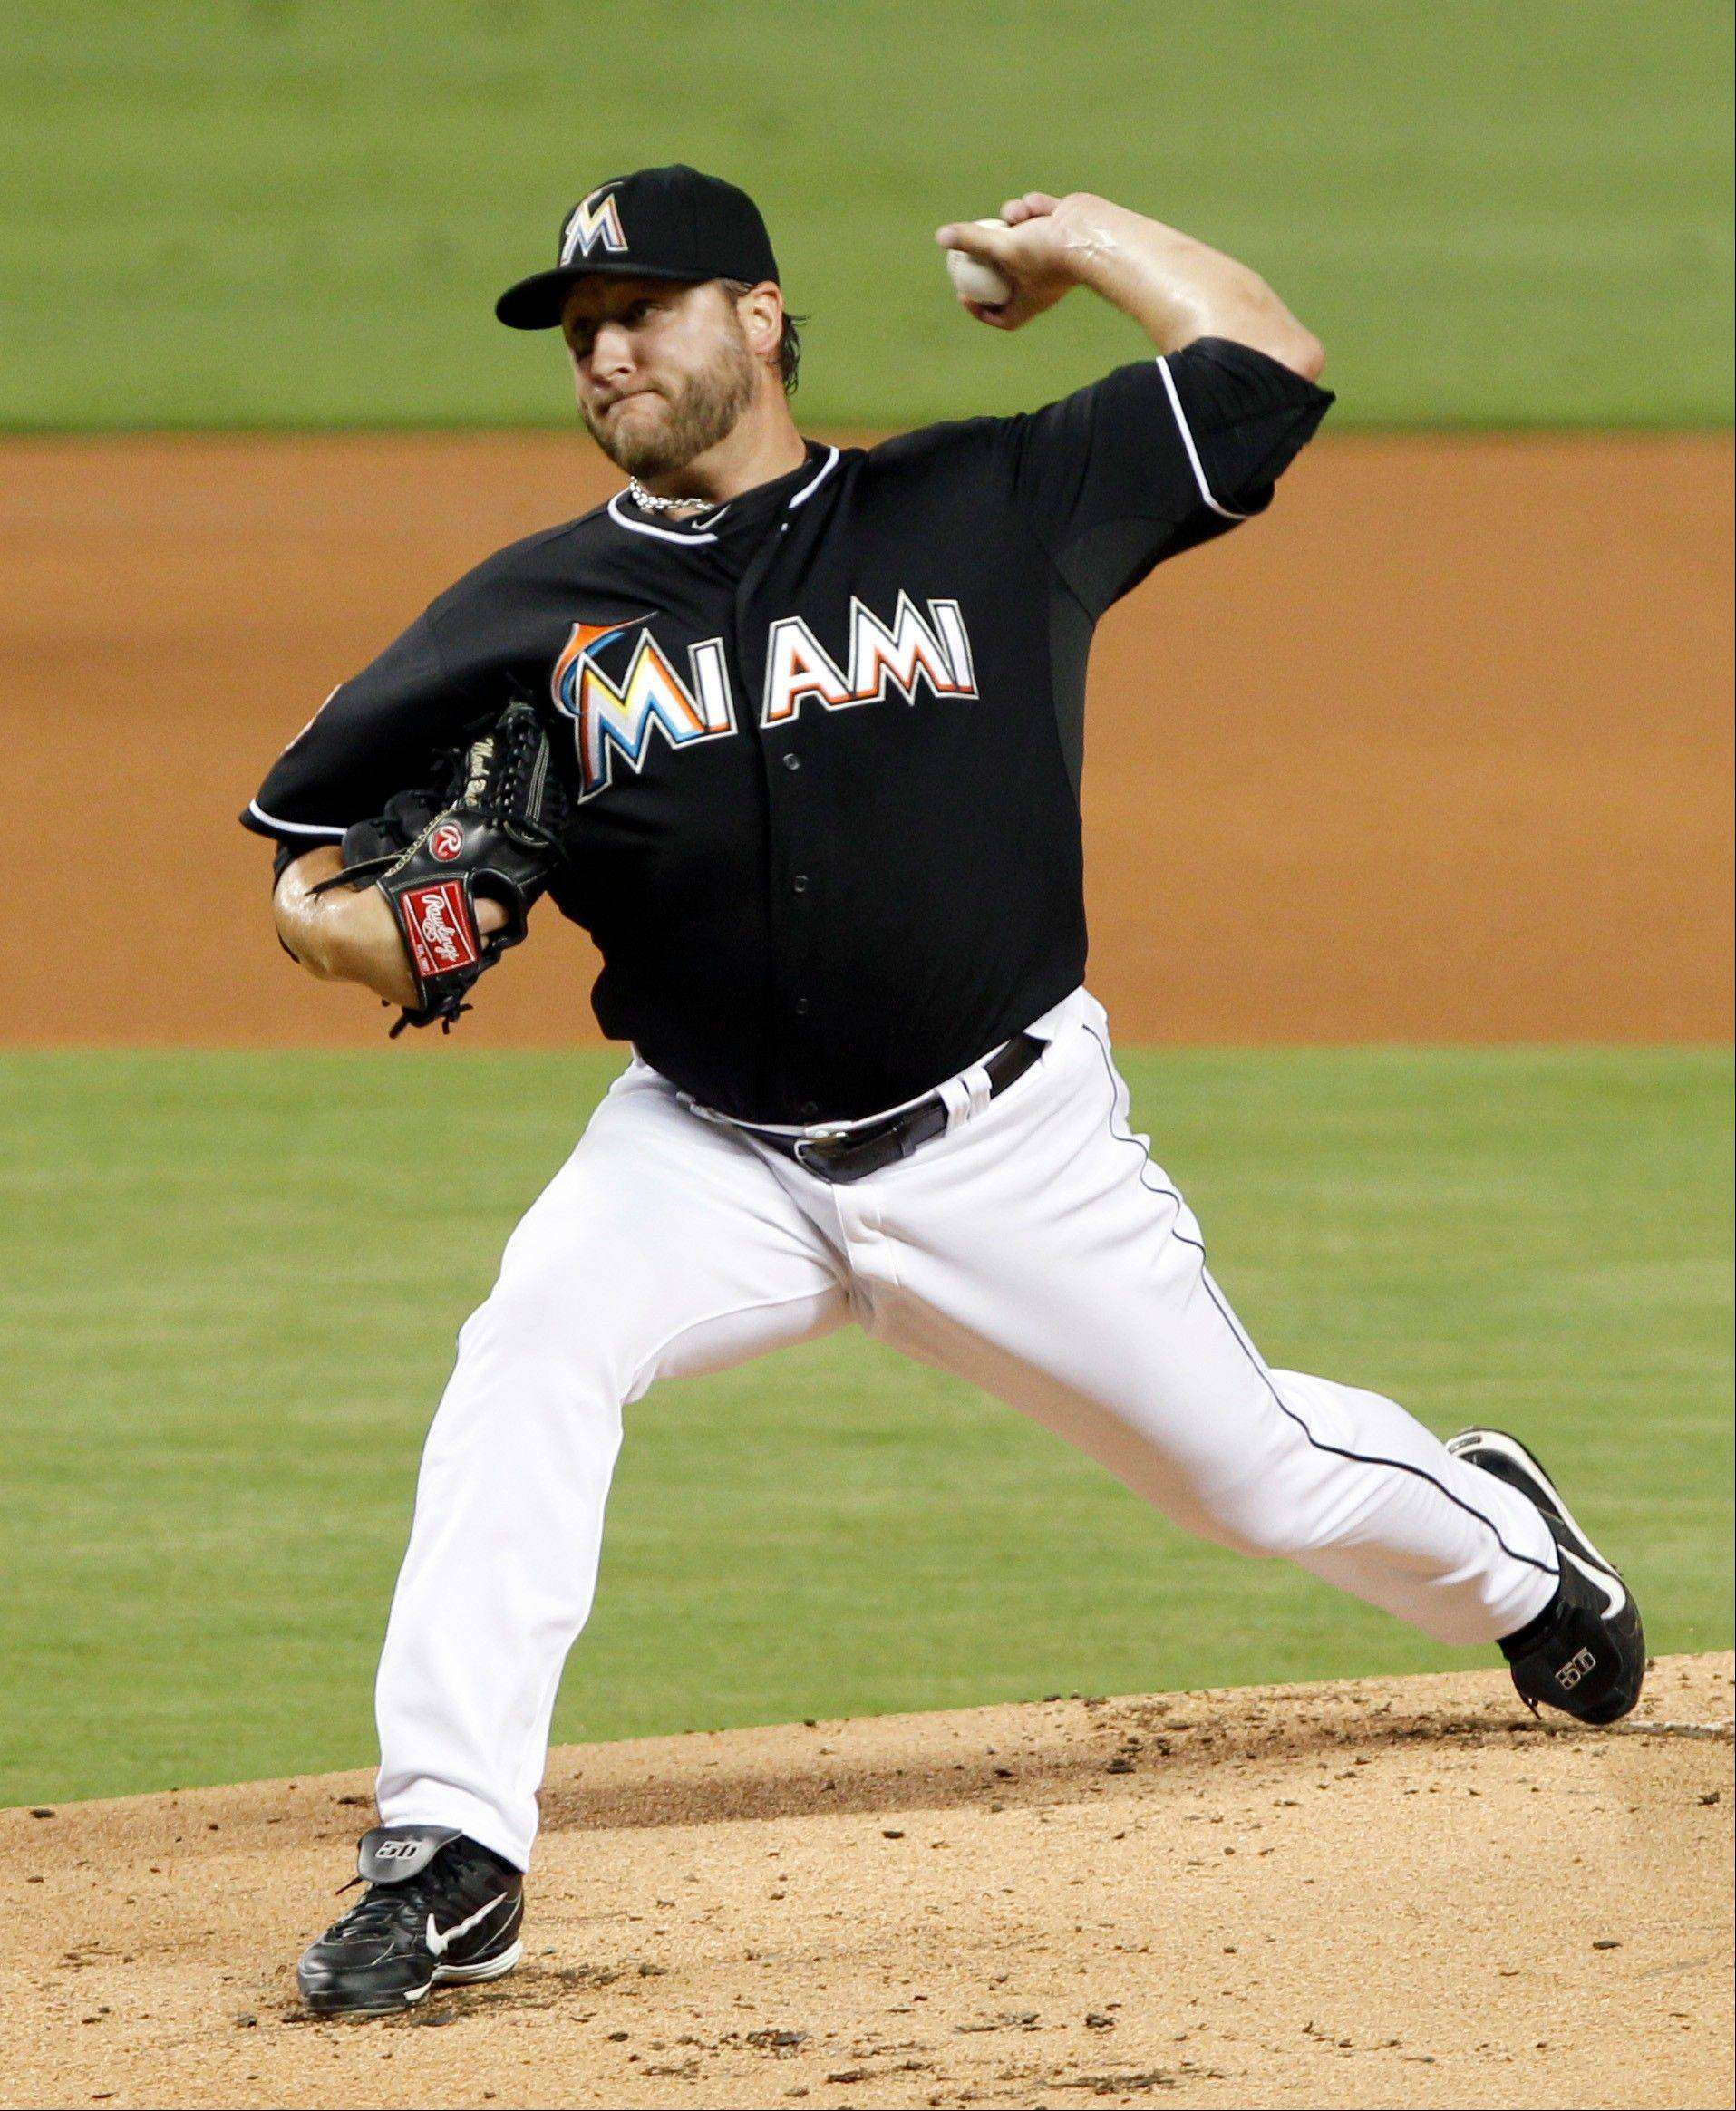 Miami's Mark Buehrle pitched eight innings Friday at home against the Phillies, allowing one run and six hits. He struck out eight as he surpassed the 200-inning mark for the 12th consecutive season.